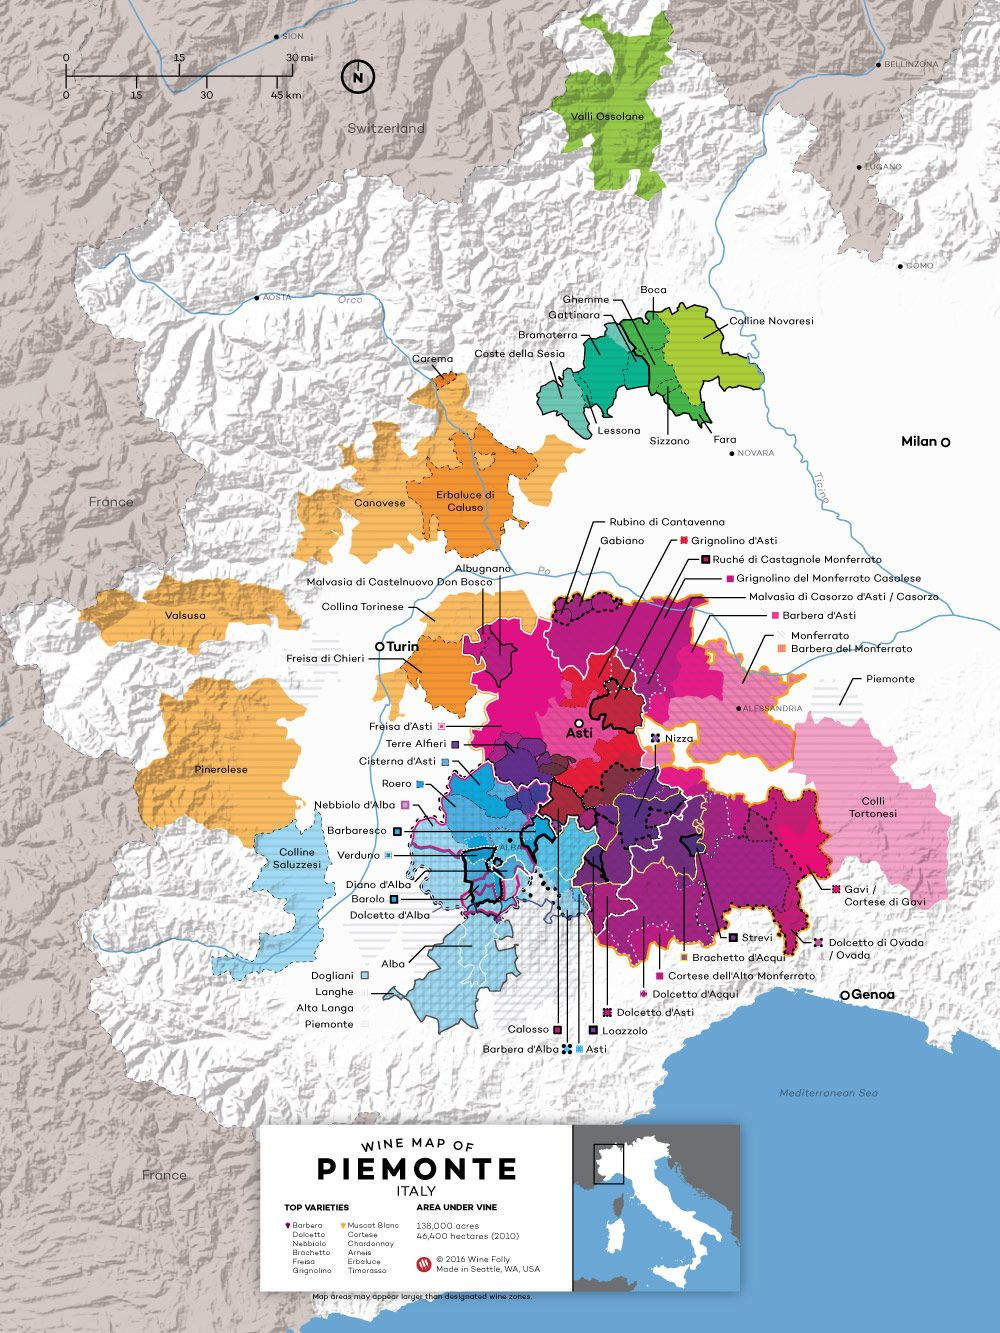 Wine Regions Italy Map.The Wines Of Piedmont Italy Docs And Docgs Wine Maps Pinterest